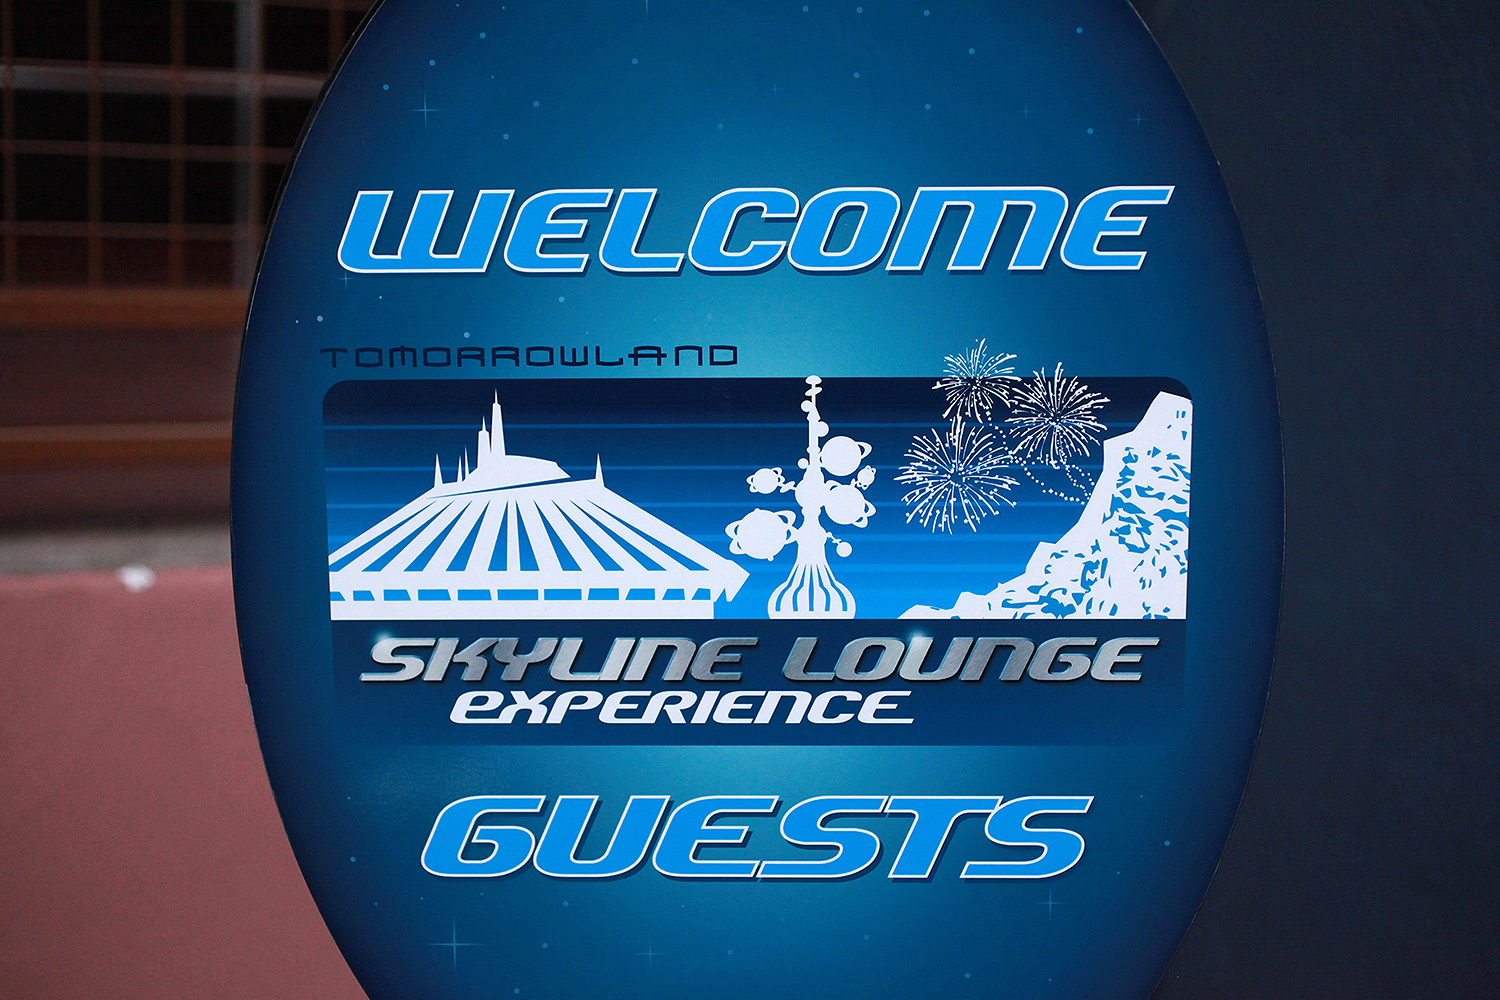 Experiencing the Tomorrowland Skyline Lounge